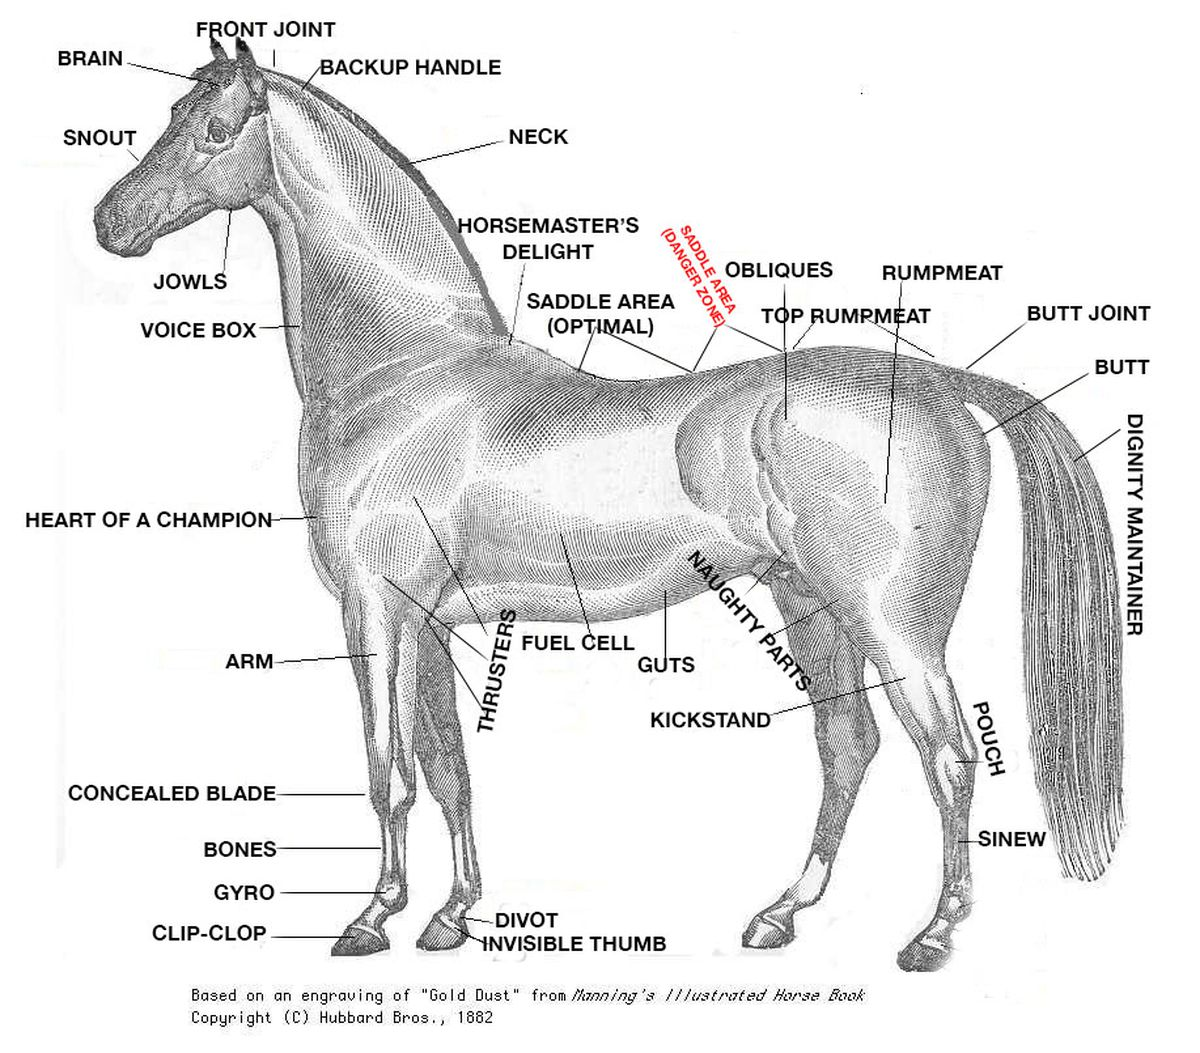 A Crash Course In Horse Anatomy For The Kentucky